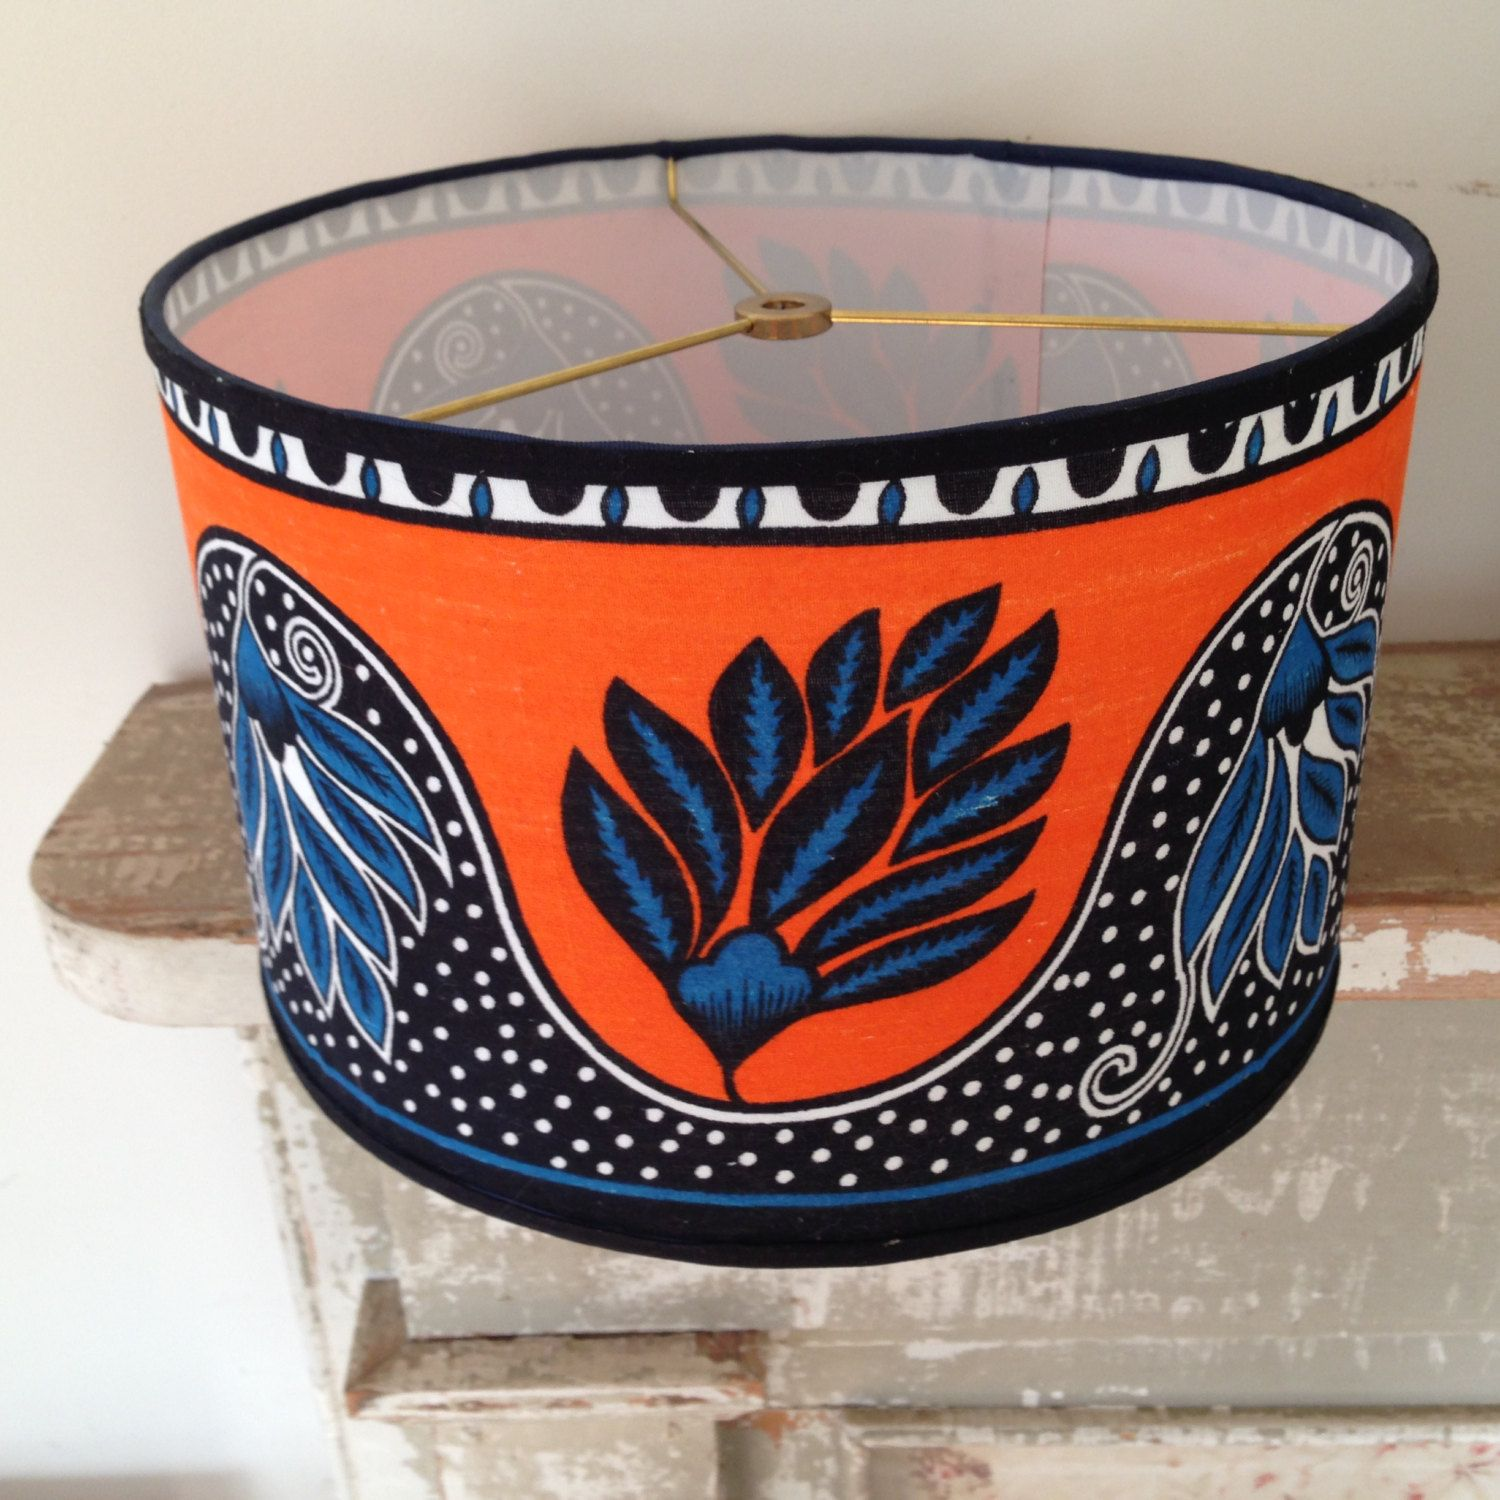 African Drum Lamp Shade Lampshade In Fabric From Kenya Orange And